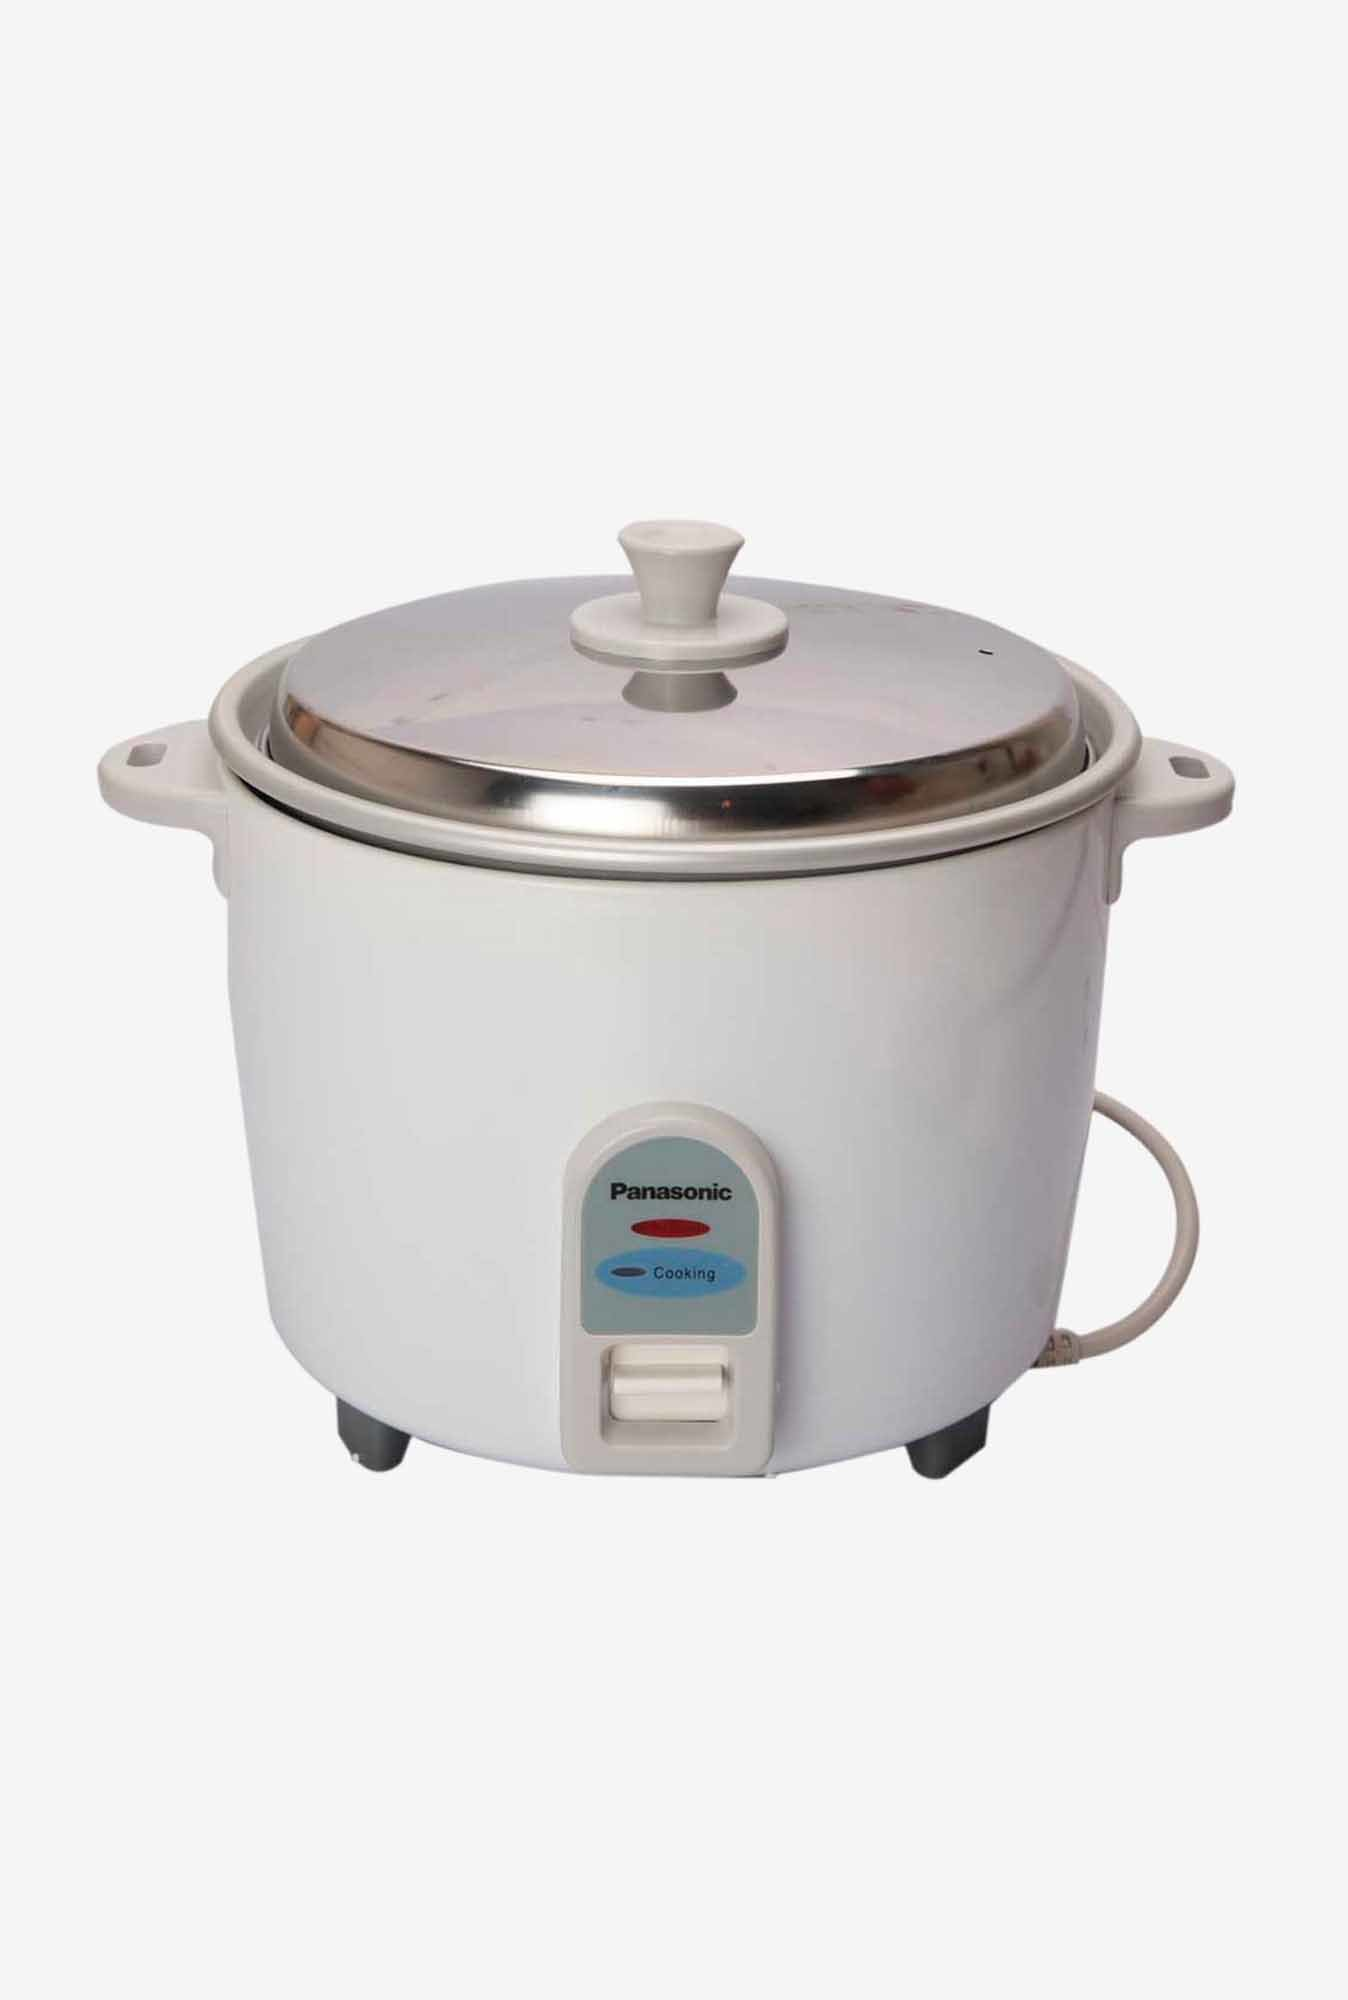 Panasonic SR-WA10 1.0 L 450 W Automatic Cooker White